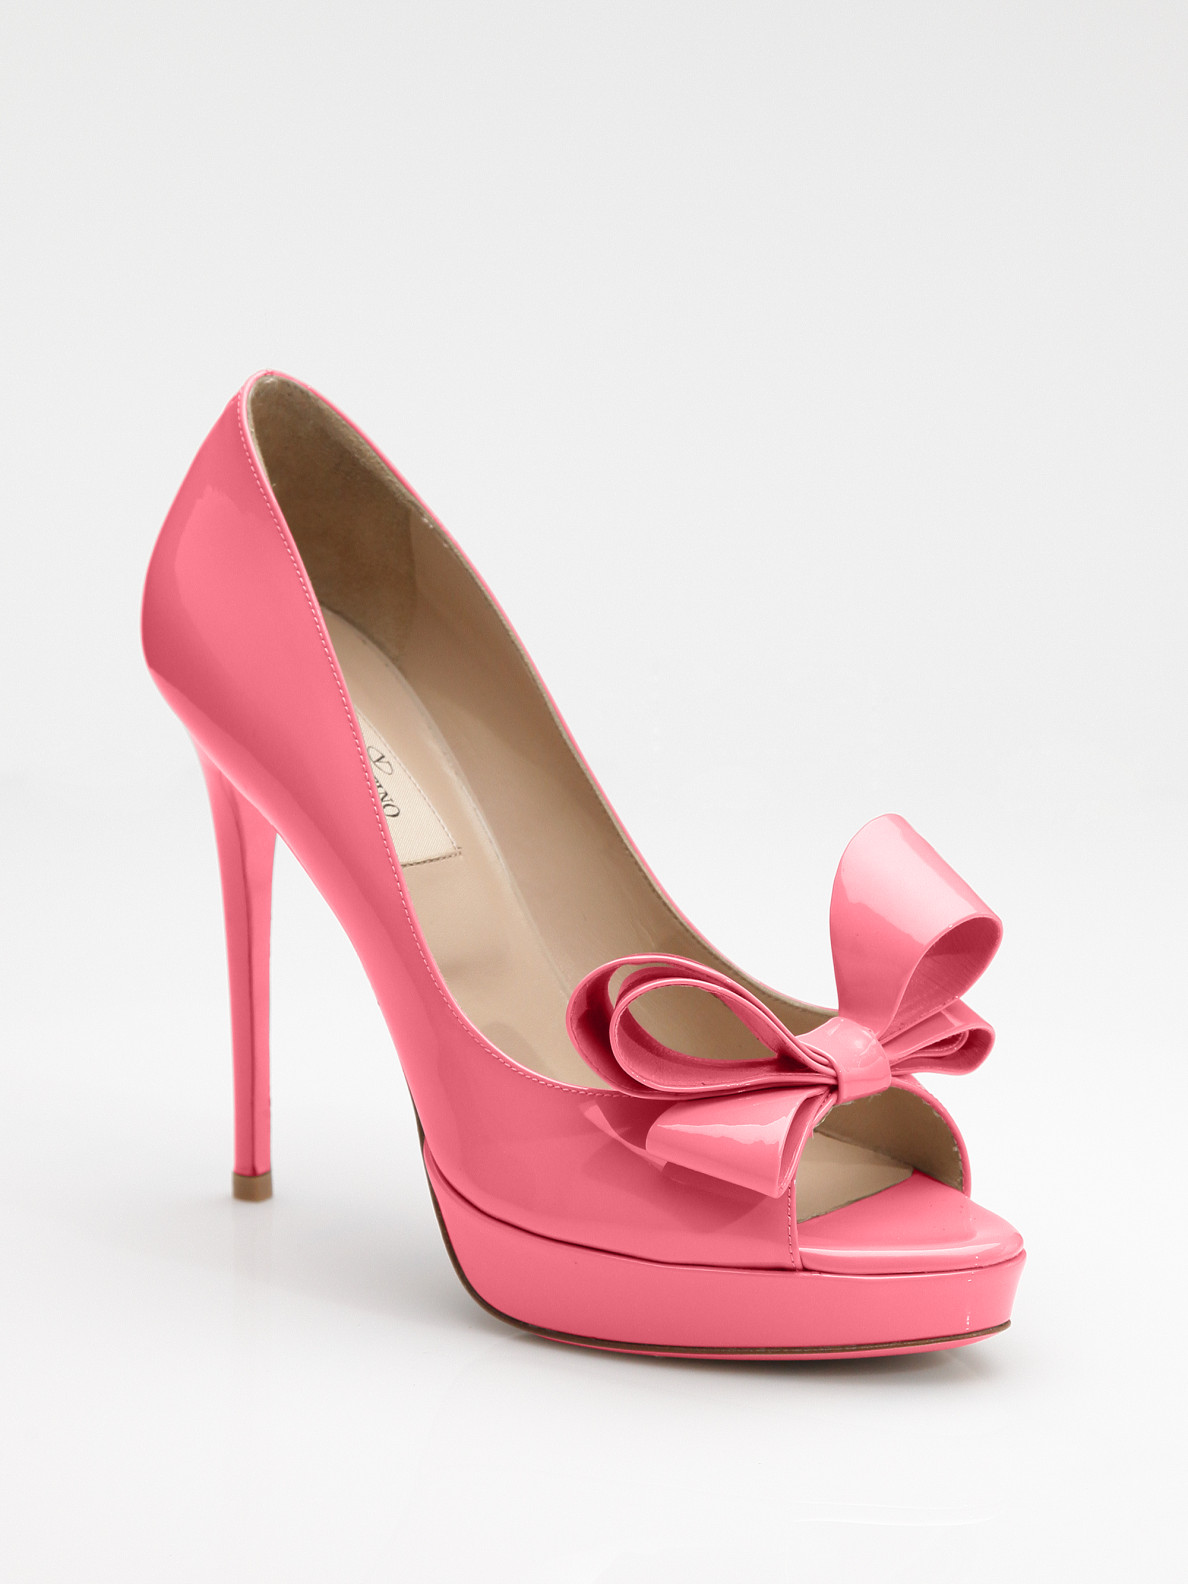 Lyst Valentino Couture Patent Leather Peeptoe Pumps In Pink